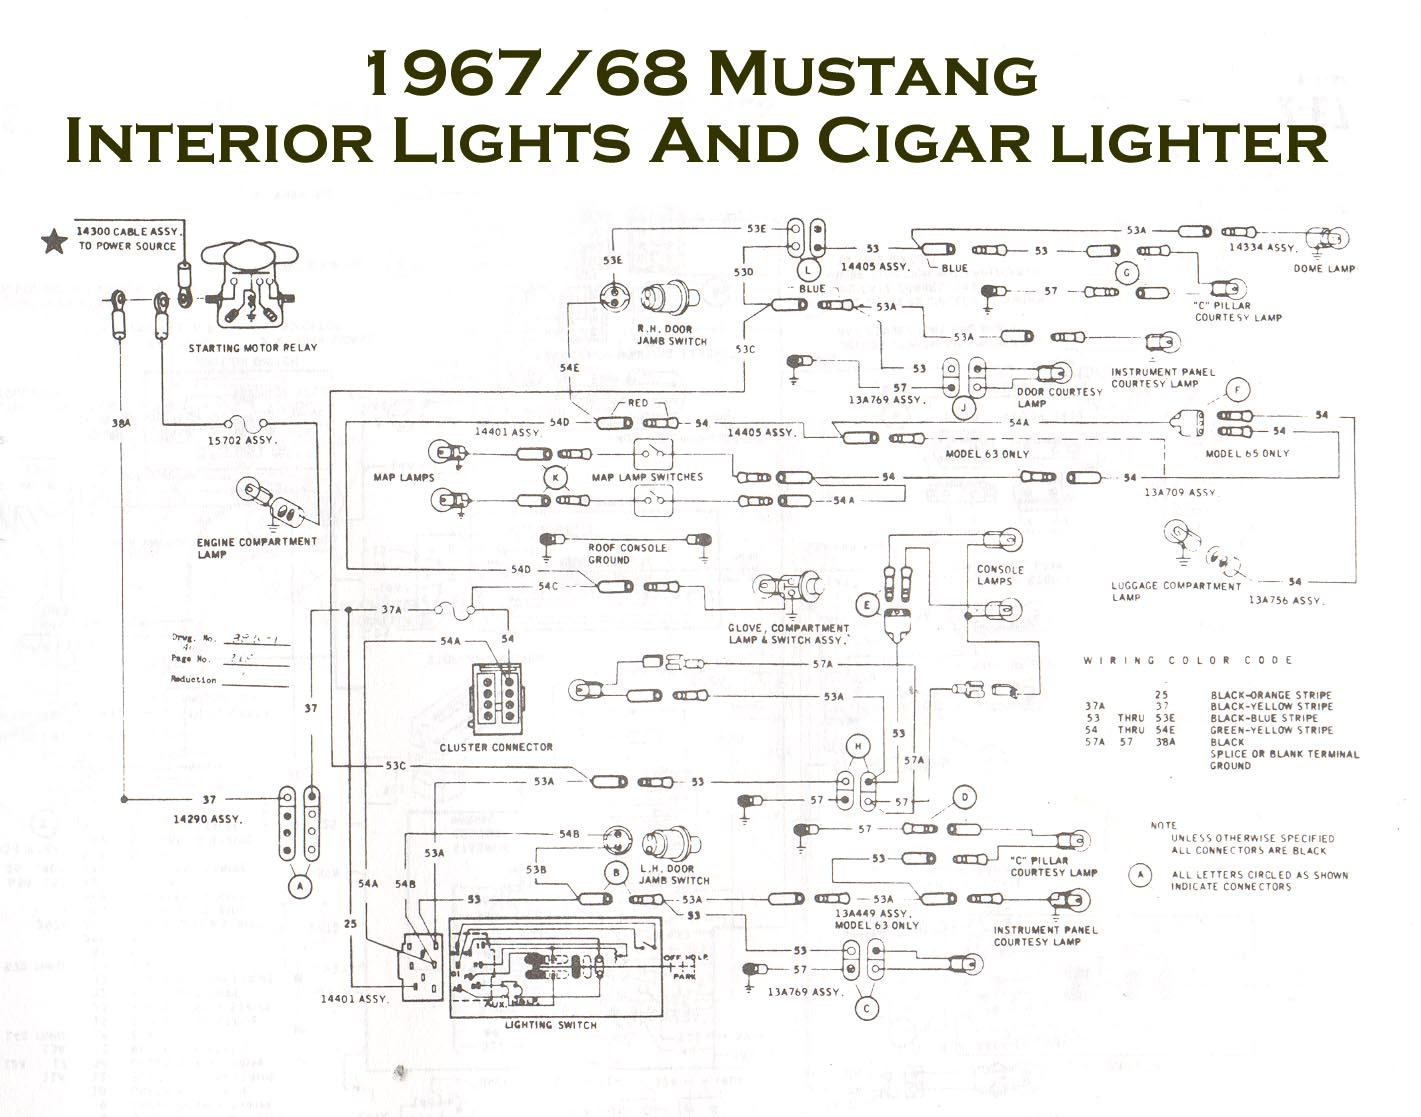 [FPER_4992]  FO_1326] 2000 Mustang Radio Wiring Harness Wiring Diagram | Fuse Block Diagram For 1967 Mustang |  | Hila Intap Nuvit Xolia Inama Mohammedshrine Librar Wiring 101